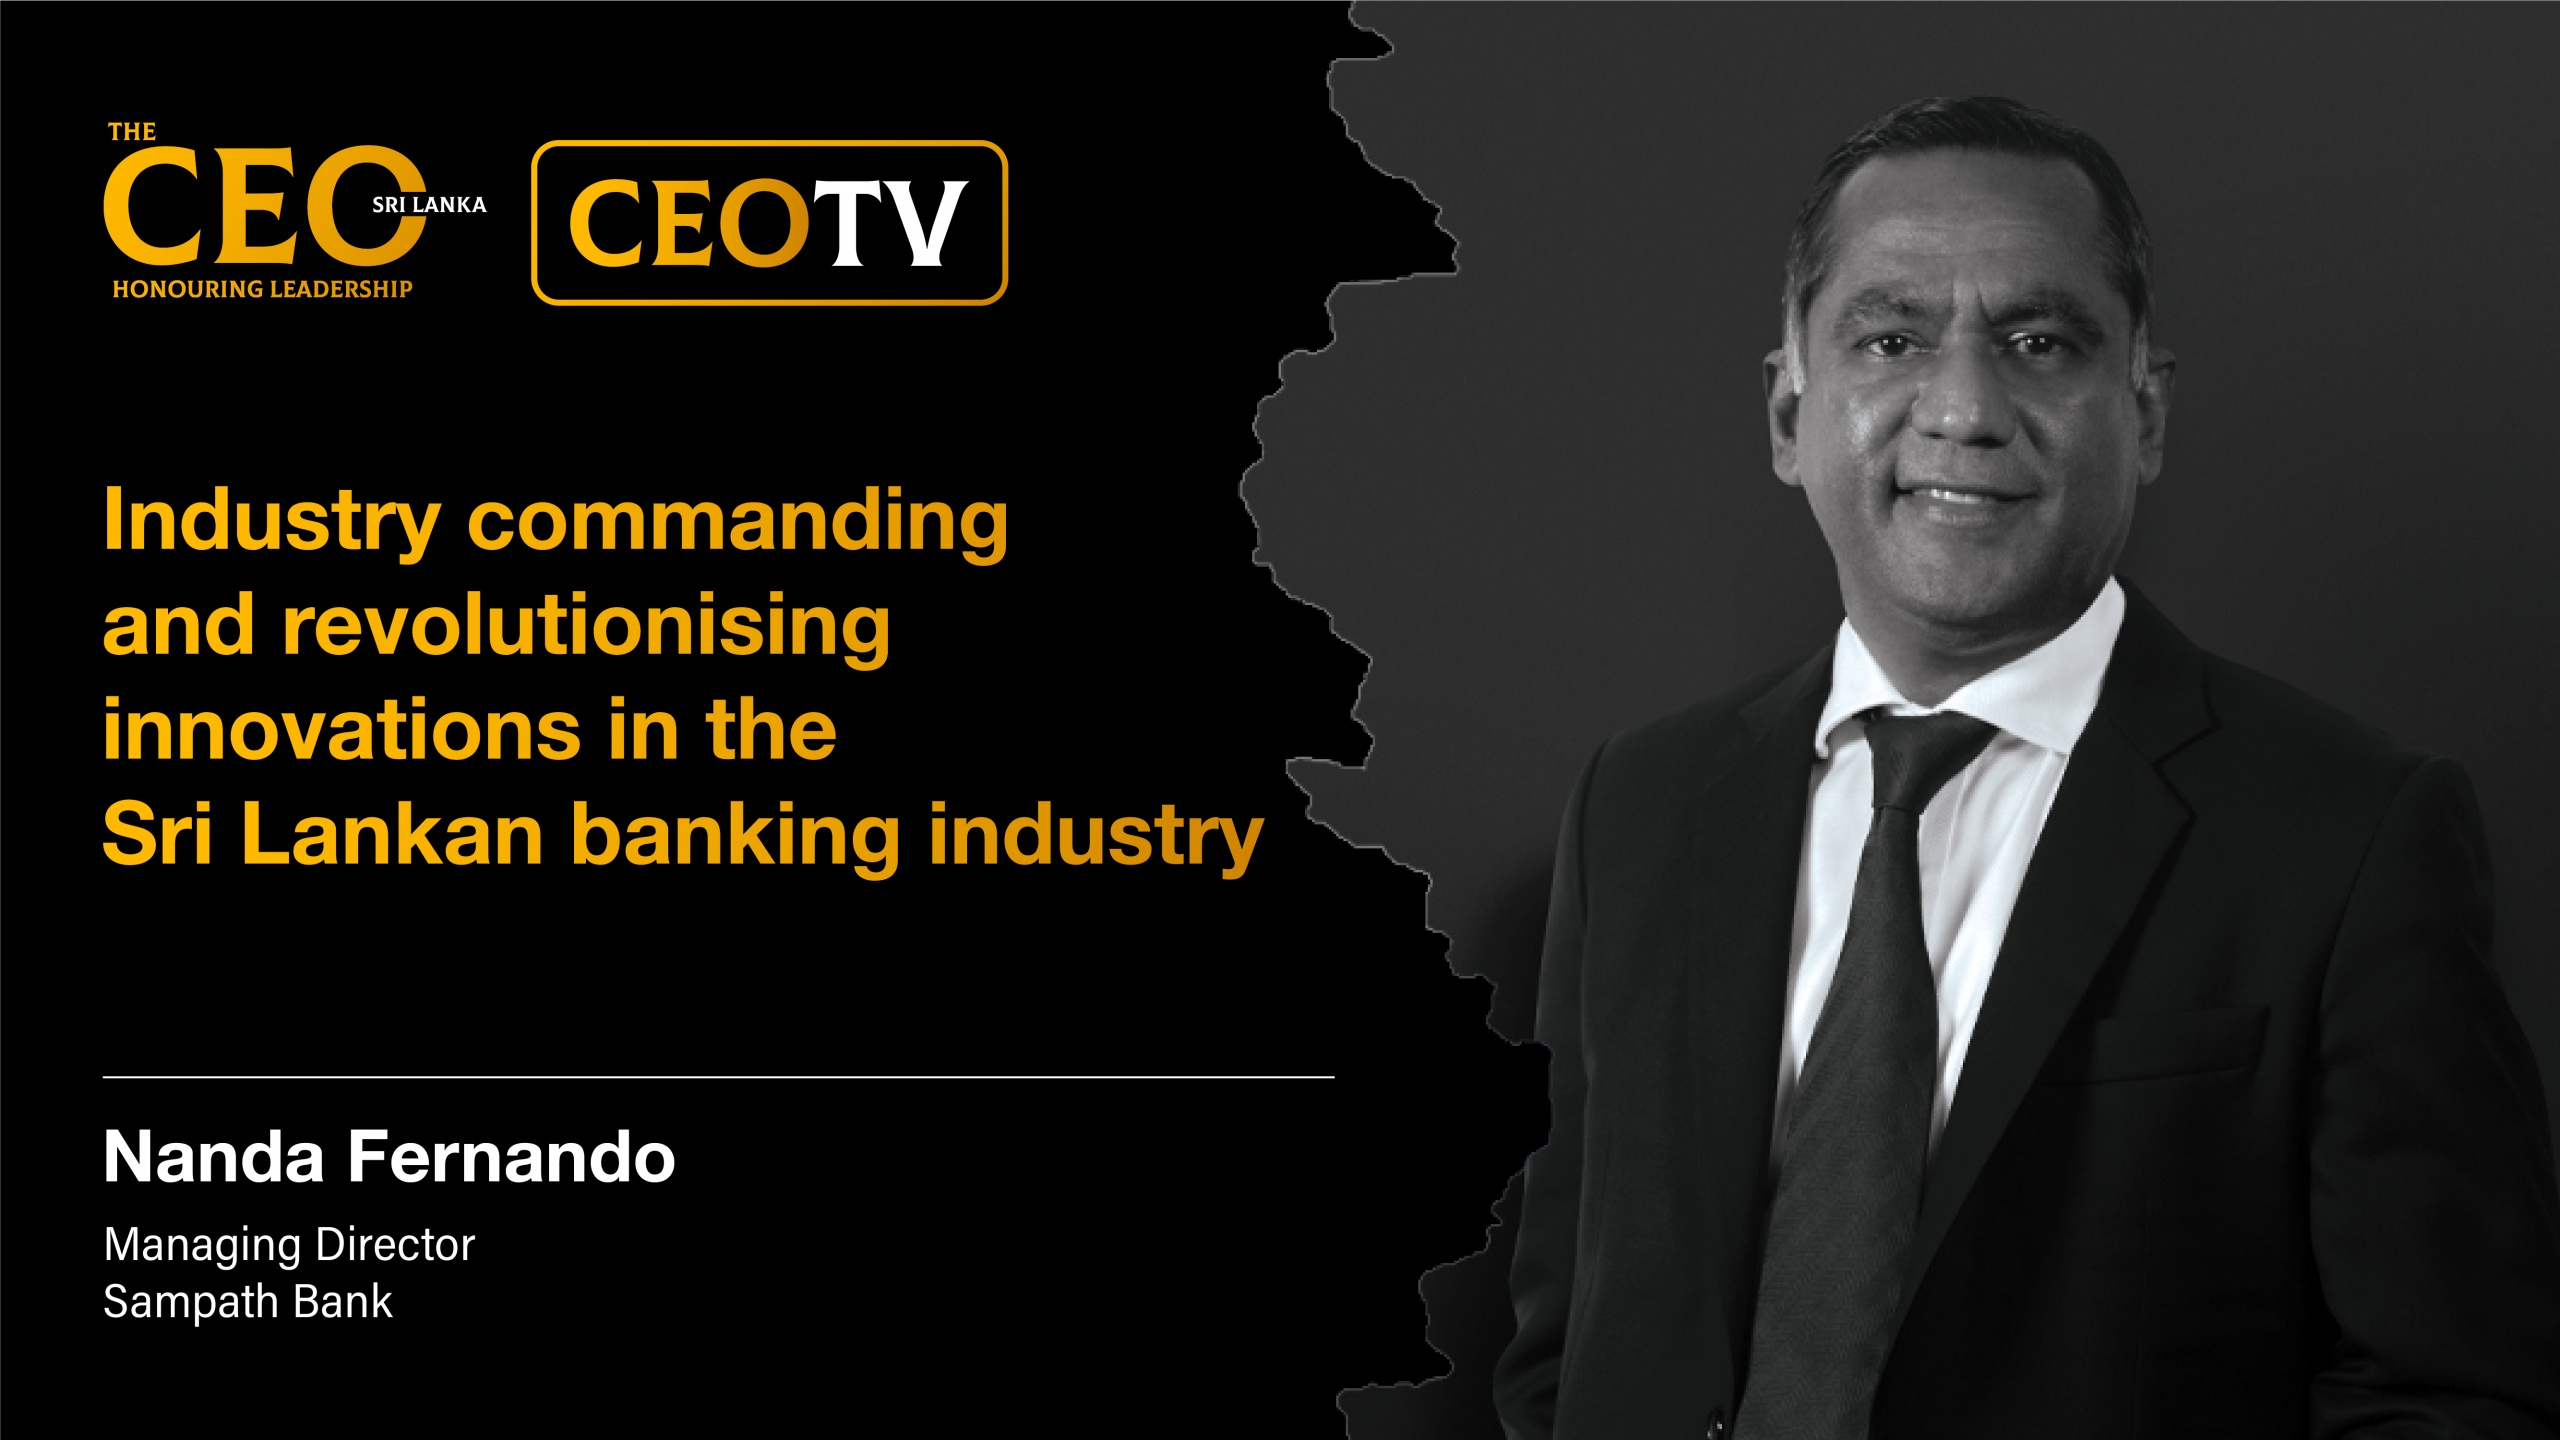 An interview with Mr. Nanda Fernando, the Managing Director of Sampath Bank PLC